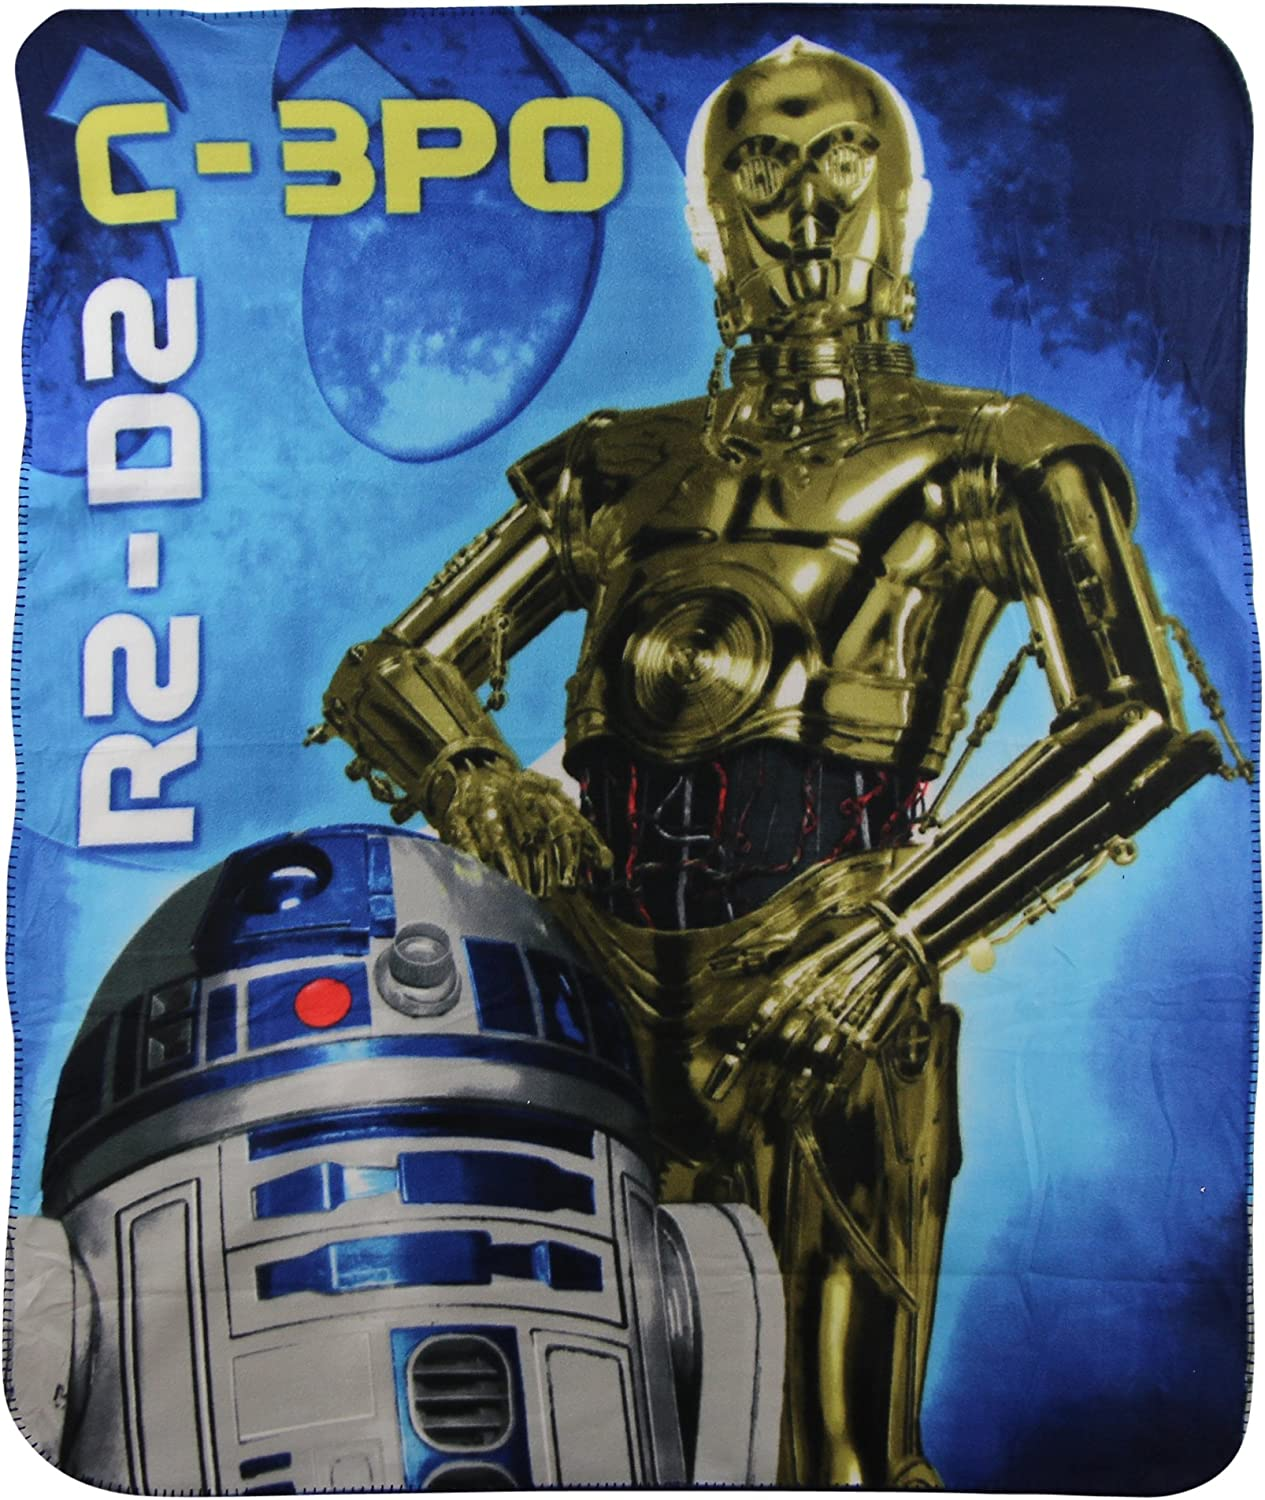 S.L. Home Fashions Star Wars C-3PO & R2-D2 Kids Character lightweight Fleece Throw Blanket